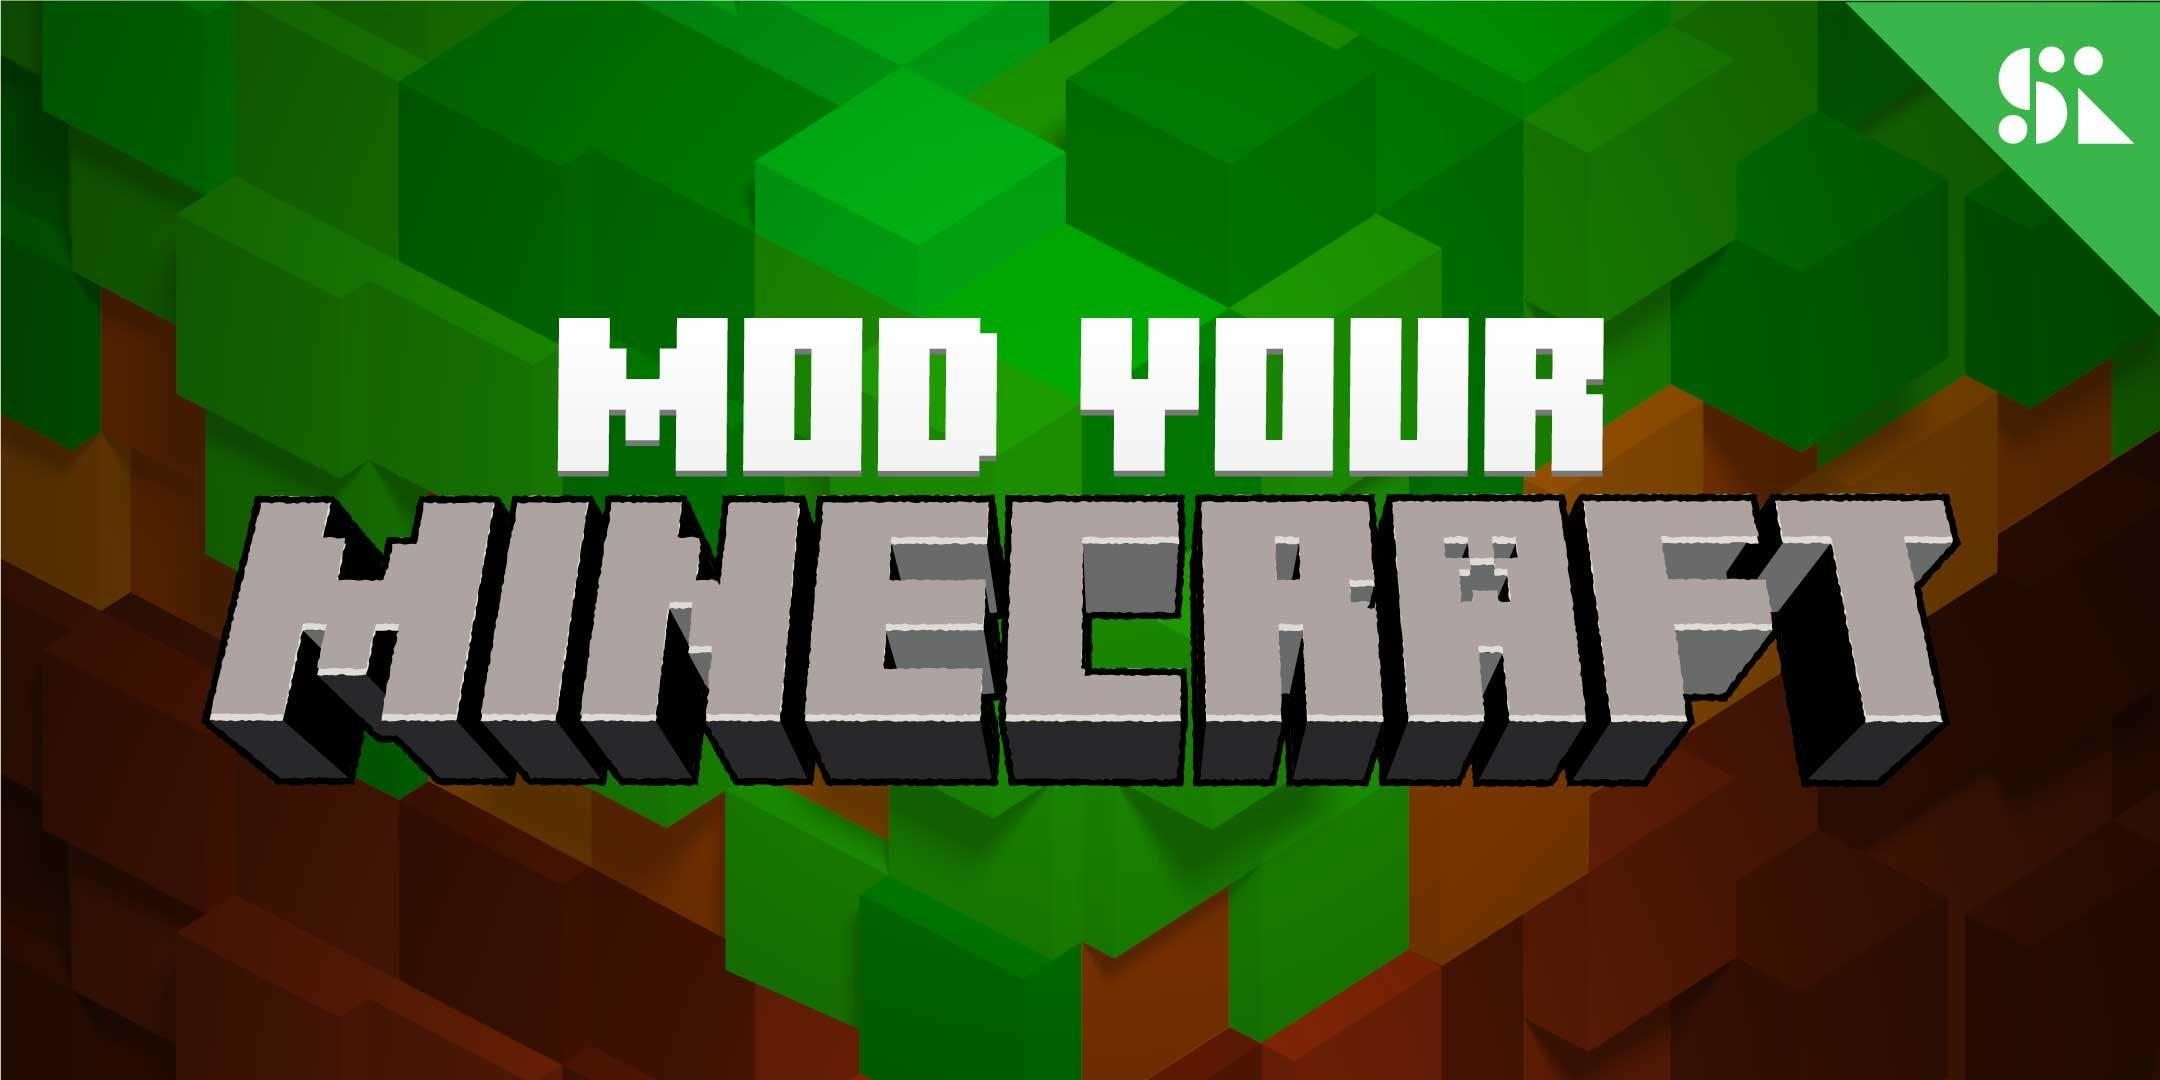 Mod &amp Hack 3D Games with Minecraft &amp Kodu [Ages 7-9] 2 Jul - 6 Jul Holiday Camp (930AM)  Bukit Timah